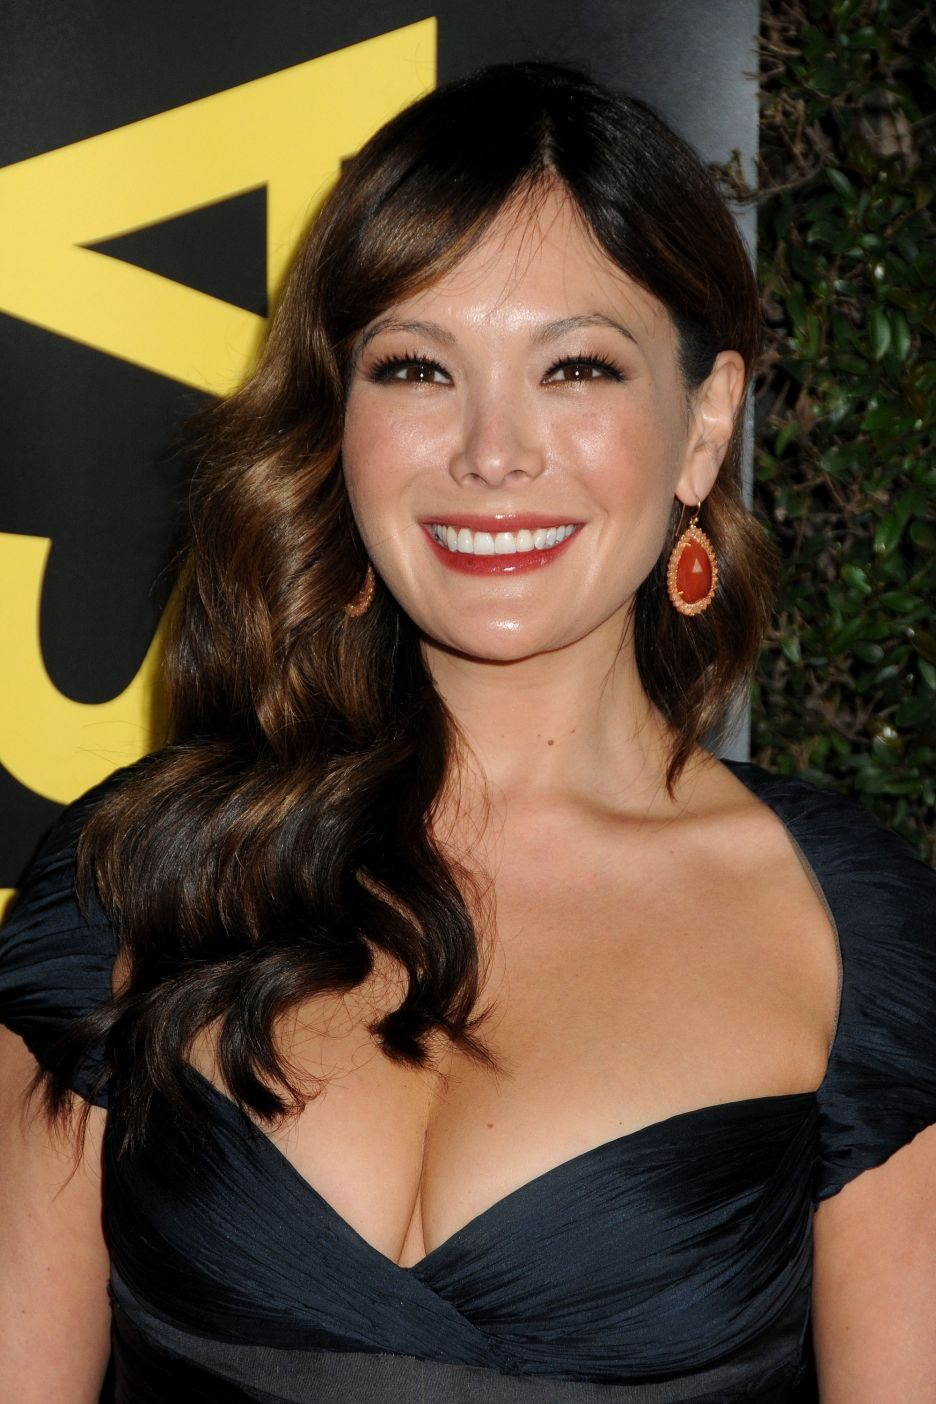 Lindsay Price - 2017 Dark Brown hair & simple hair style. Current length:  long hair (bra strap length)